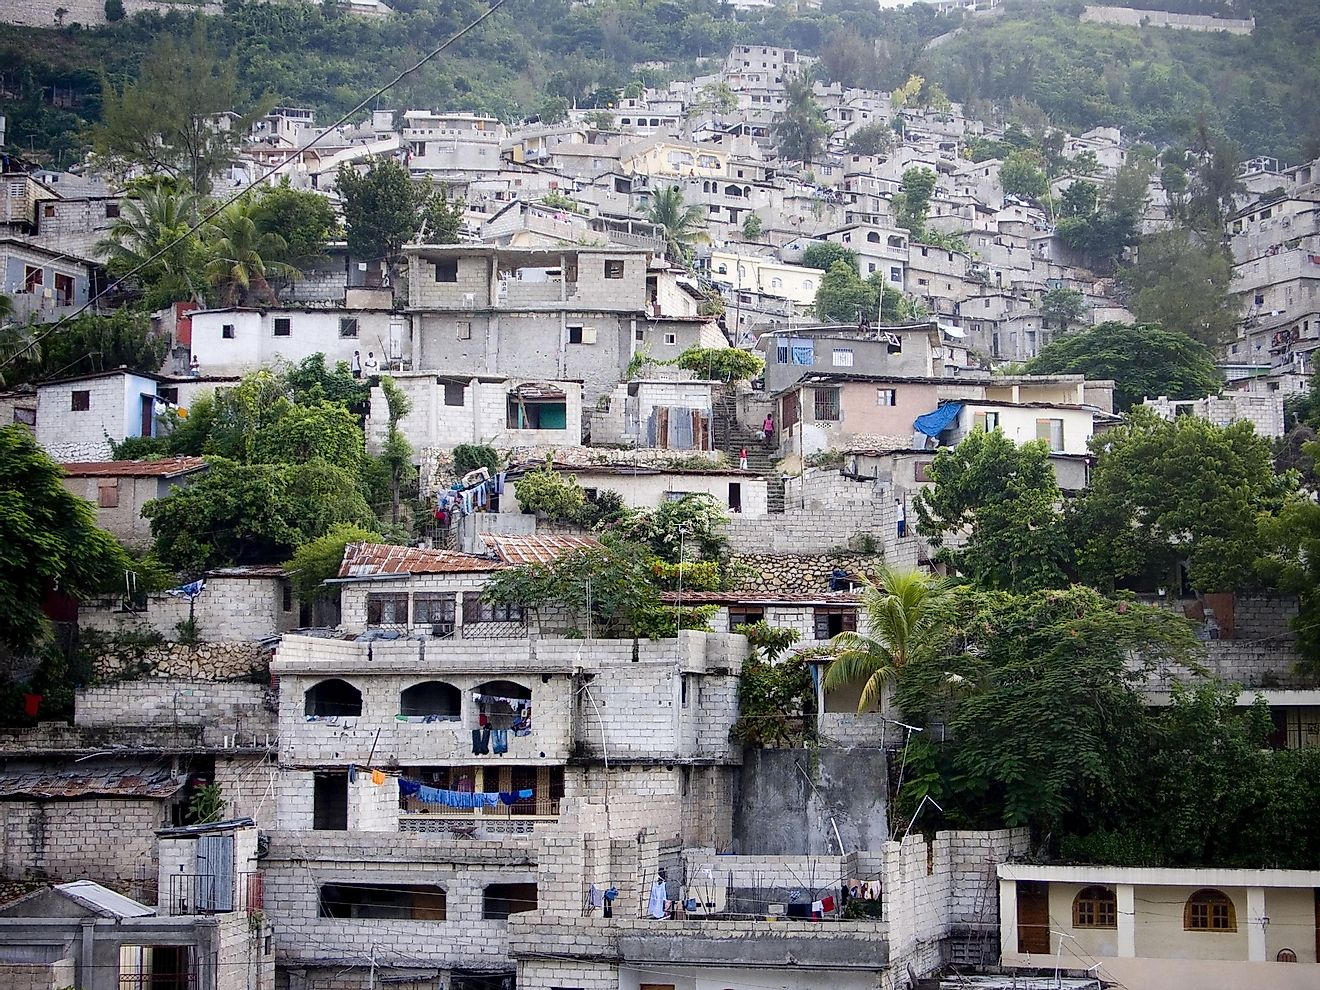 A series of anti-government demonstrations, which have regularly resulted in state violence, causes Haiti to be one of the only countries in the Americas to make the list of the worst governments worldwide.